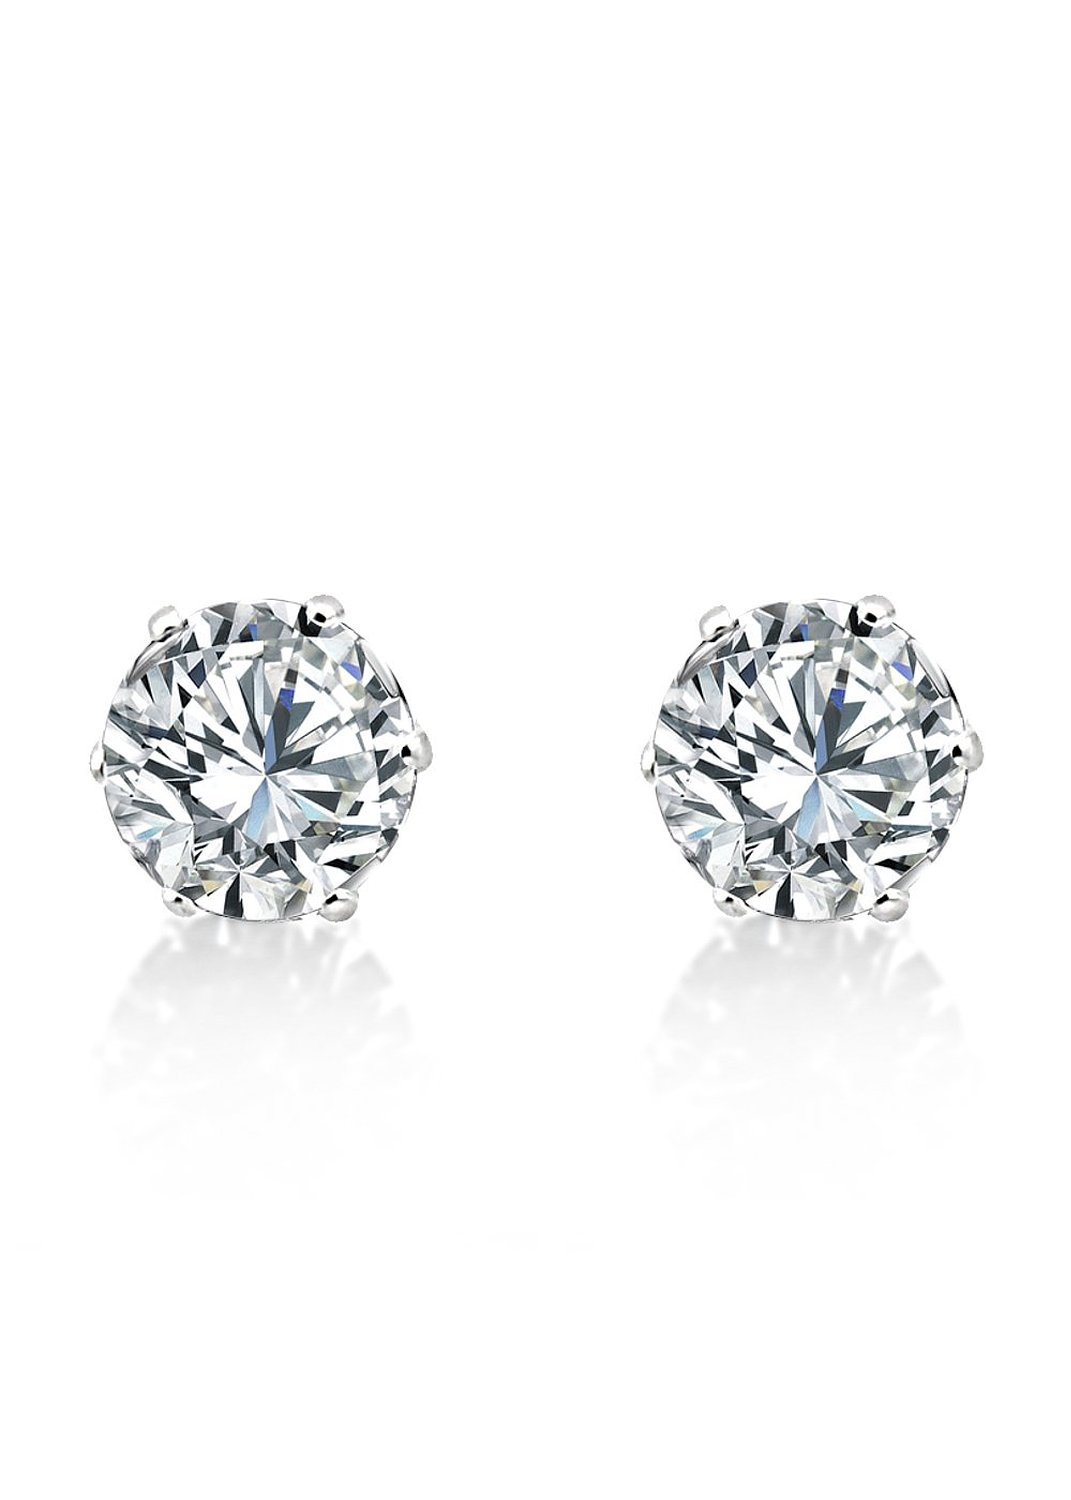 Big Tree Copper Stud Earring For Women (Silver) for Rs 179 (66% off)